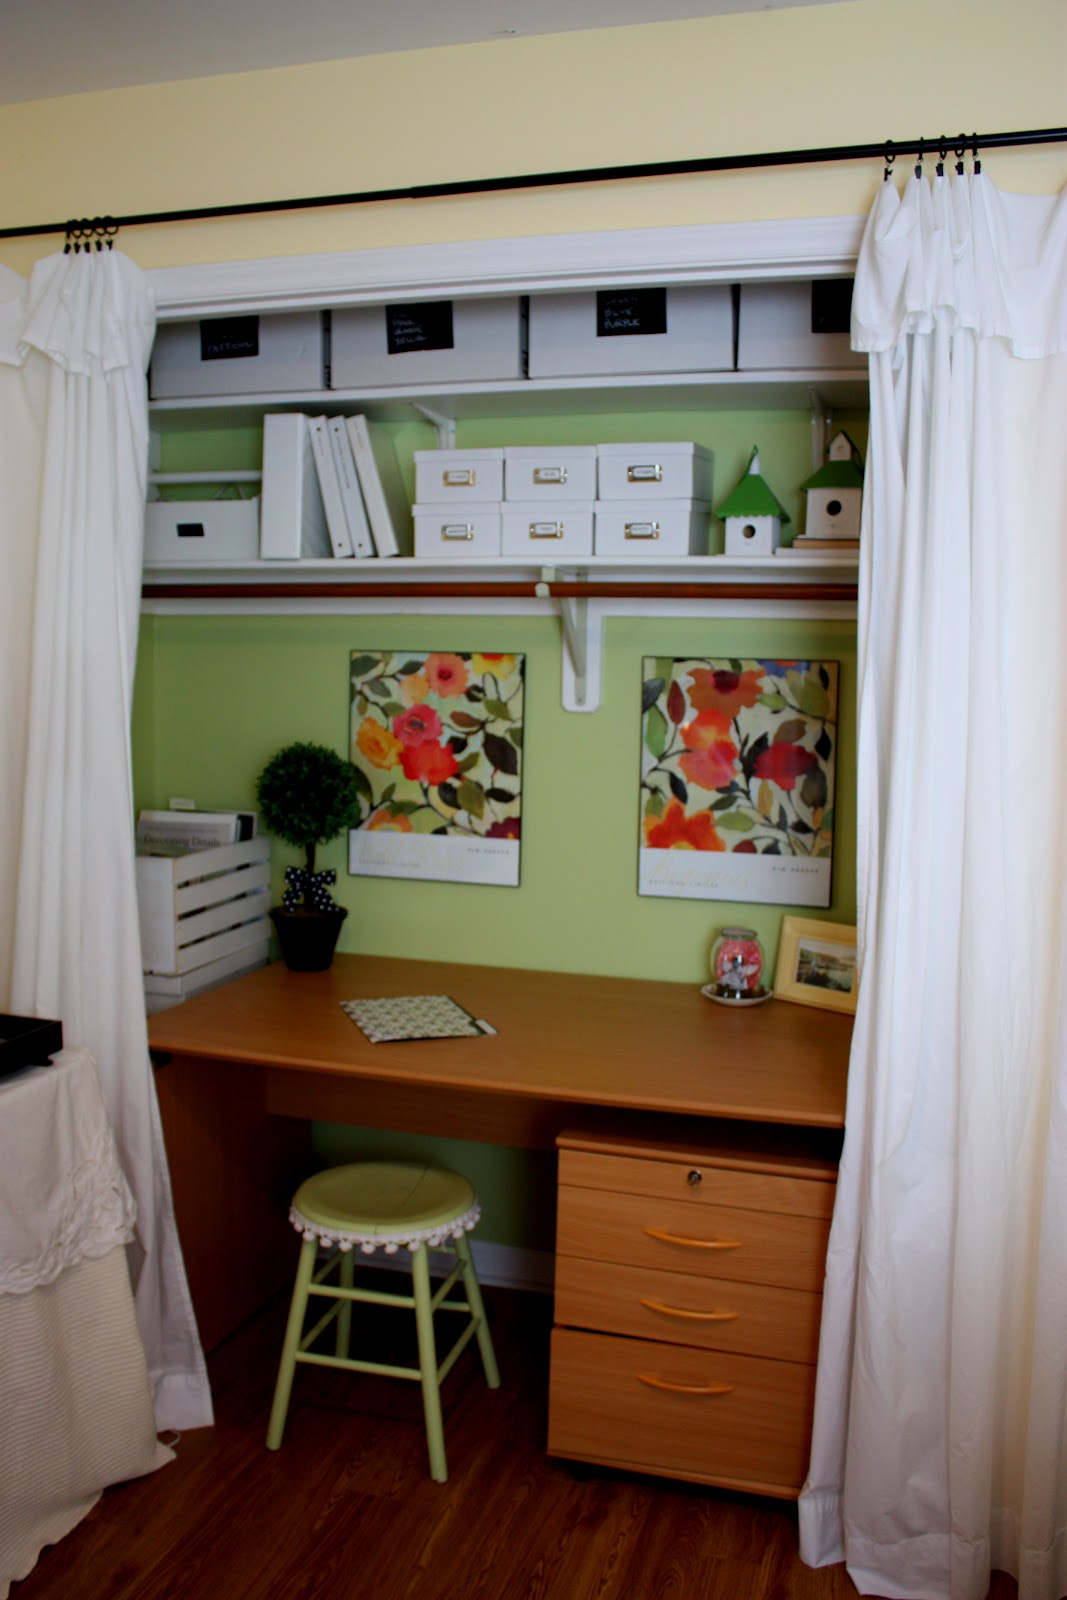 The Red Chair Blog: Closet Office / Craft Space (Part 1)